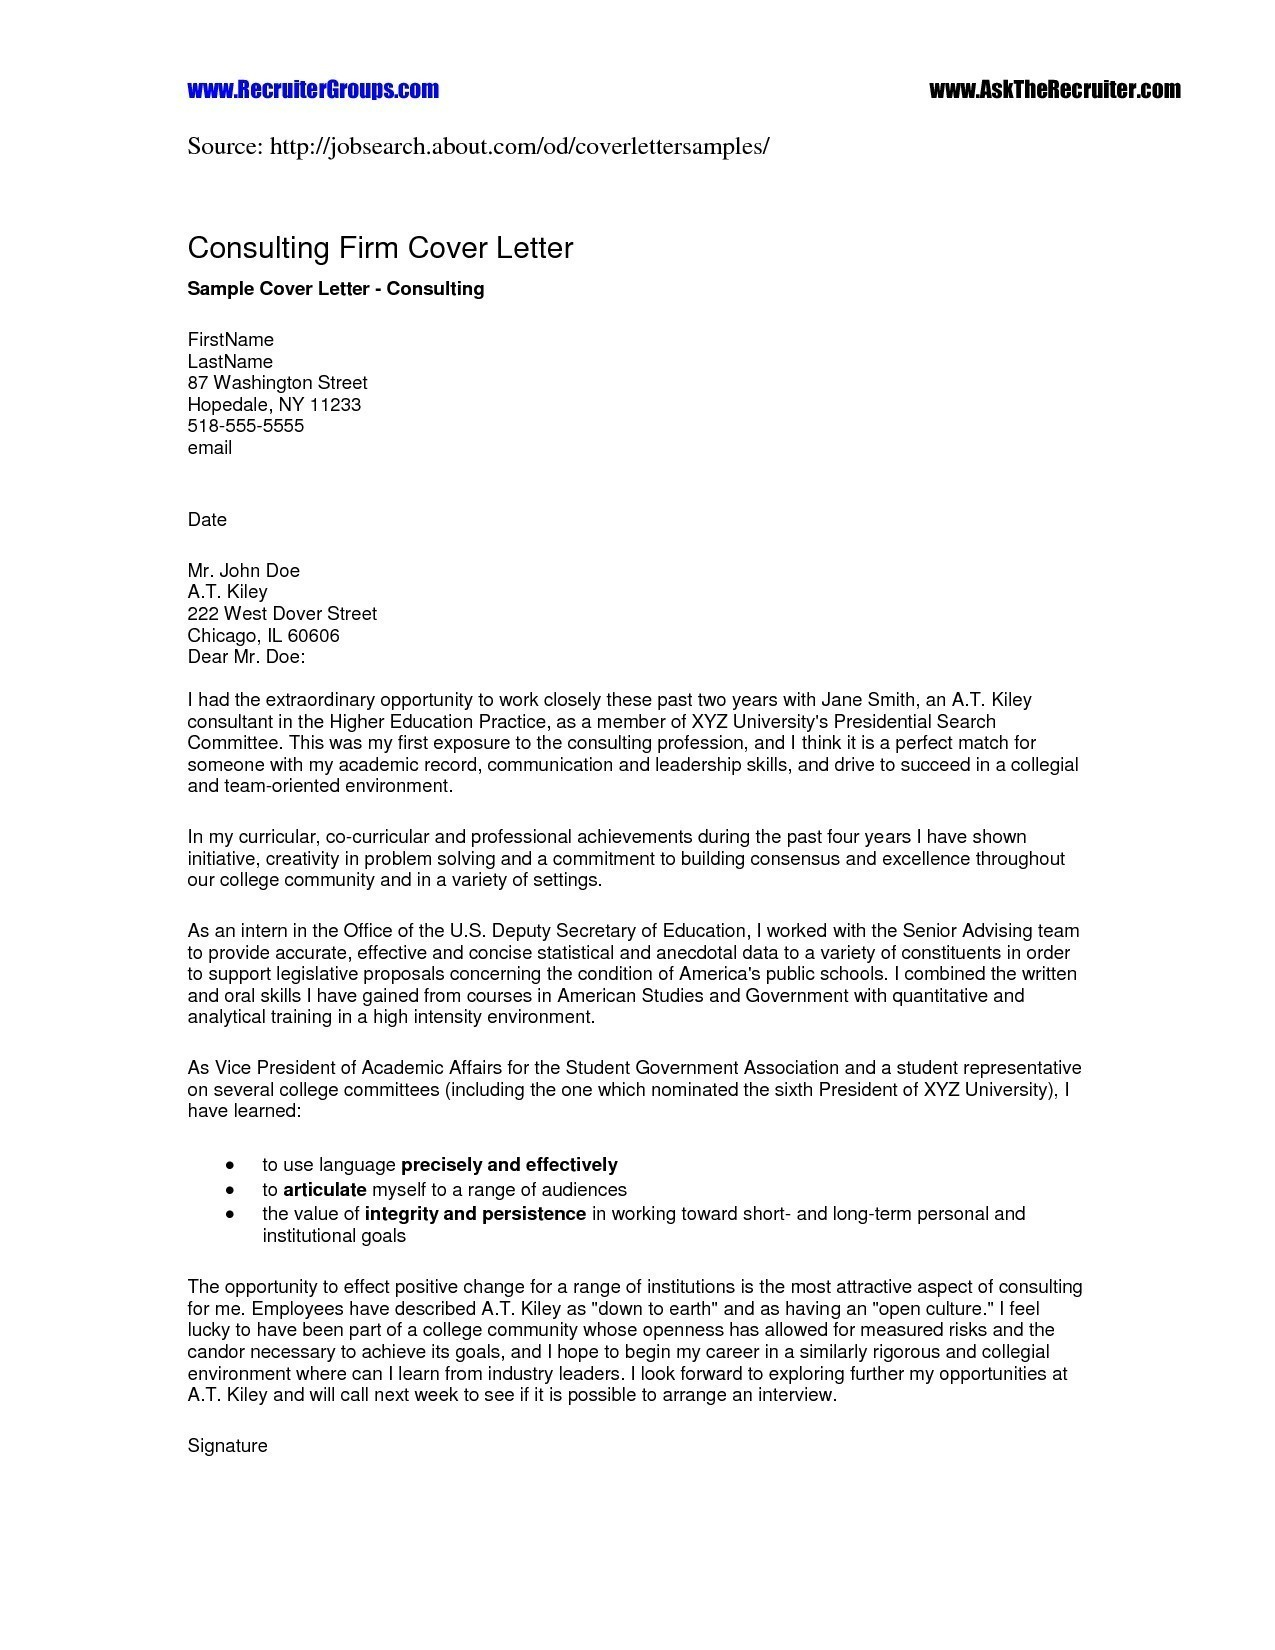 Letter to Troops Template - Sample Cover Letter for Military Job Refrence Job Application Letter